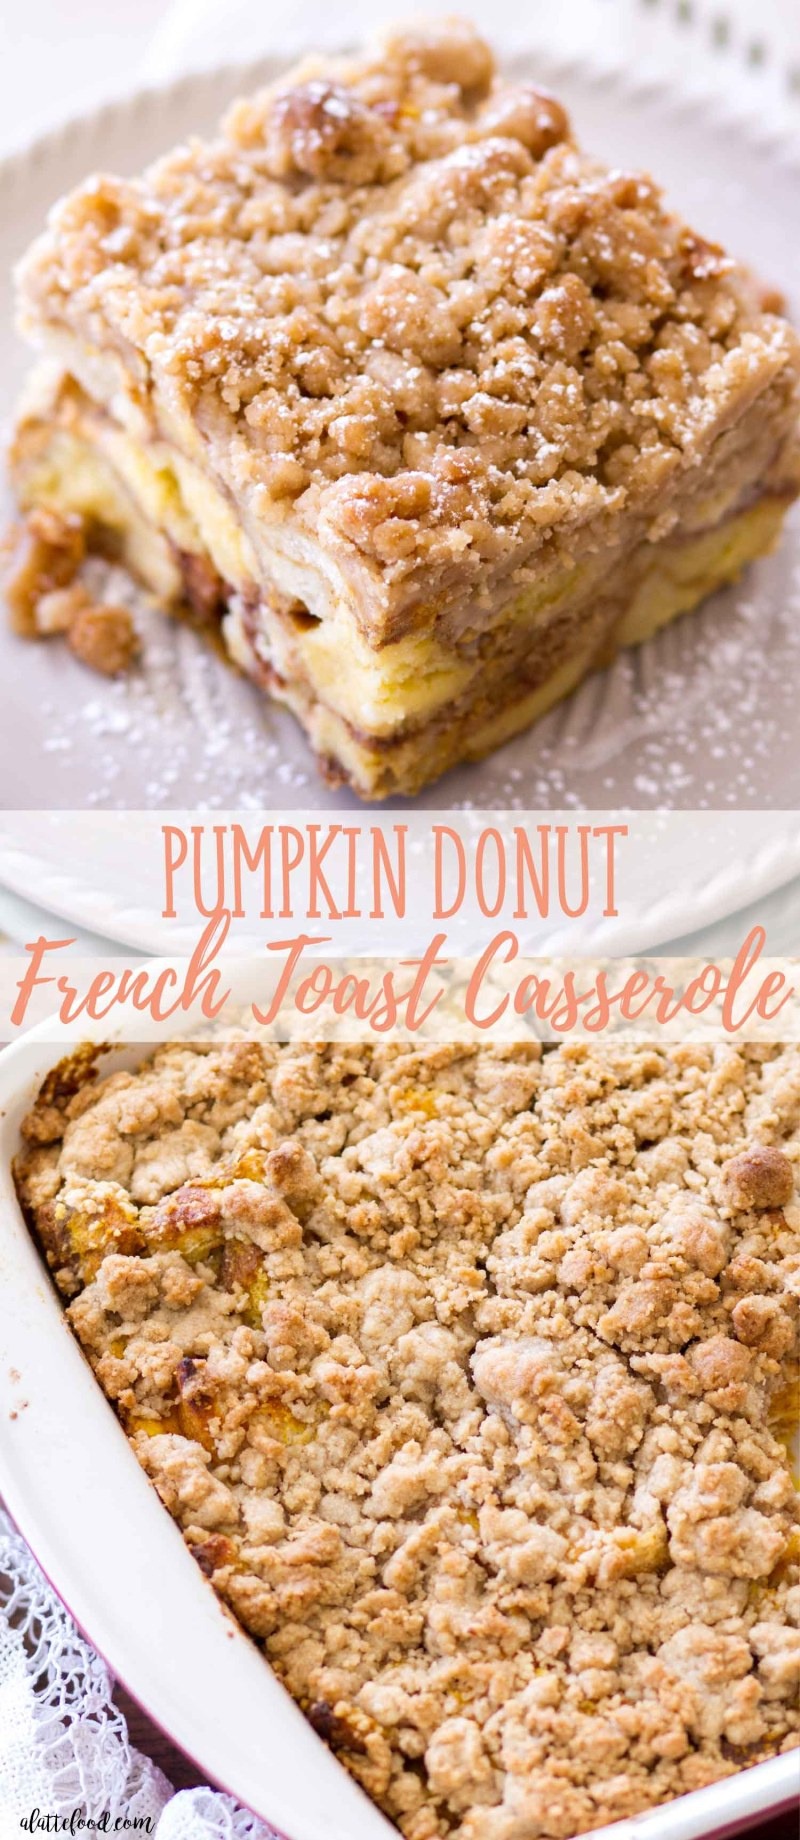 pumpkin donut french toast casserole collage photo